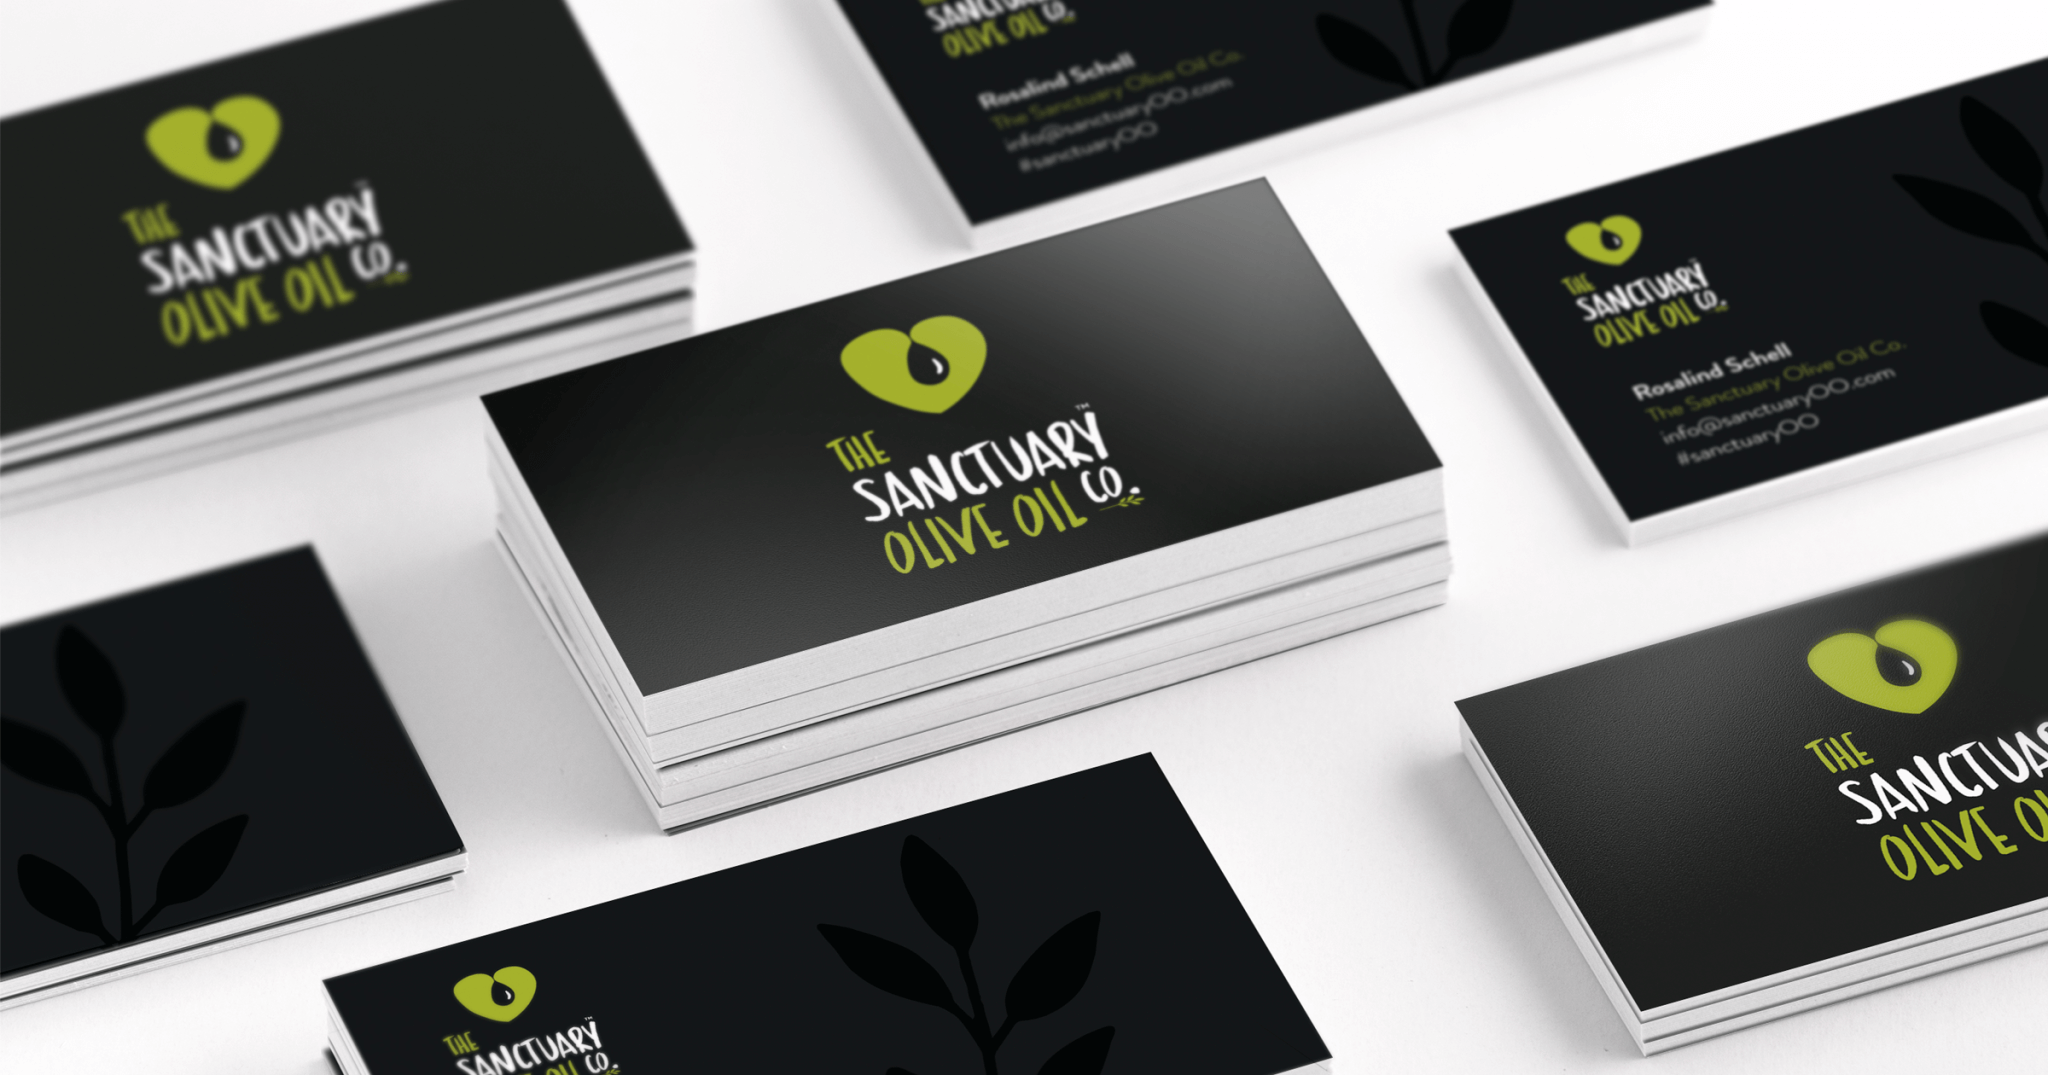 The Sanctuary Olive Oil Co. business cards by KidDotCo | business ...